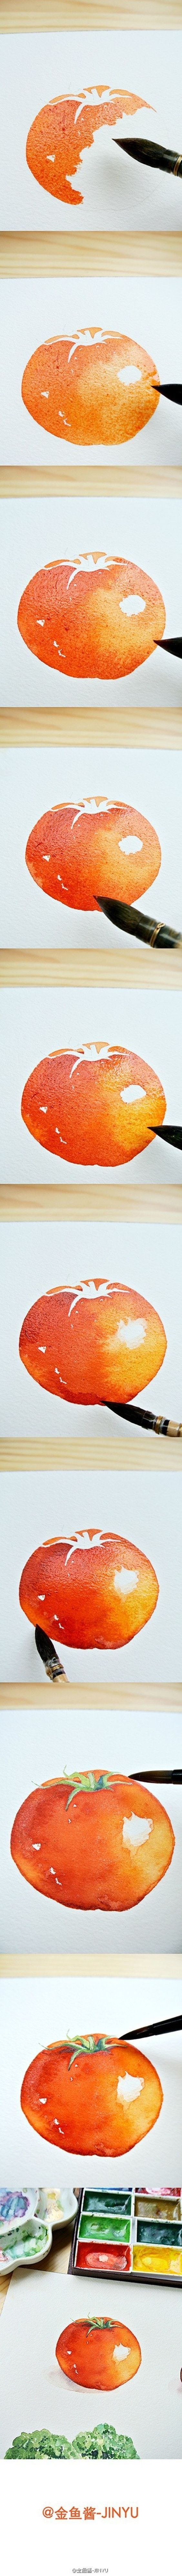 Pin Auf Art Watercolours